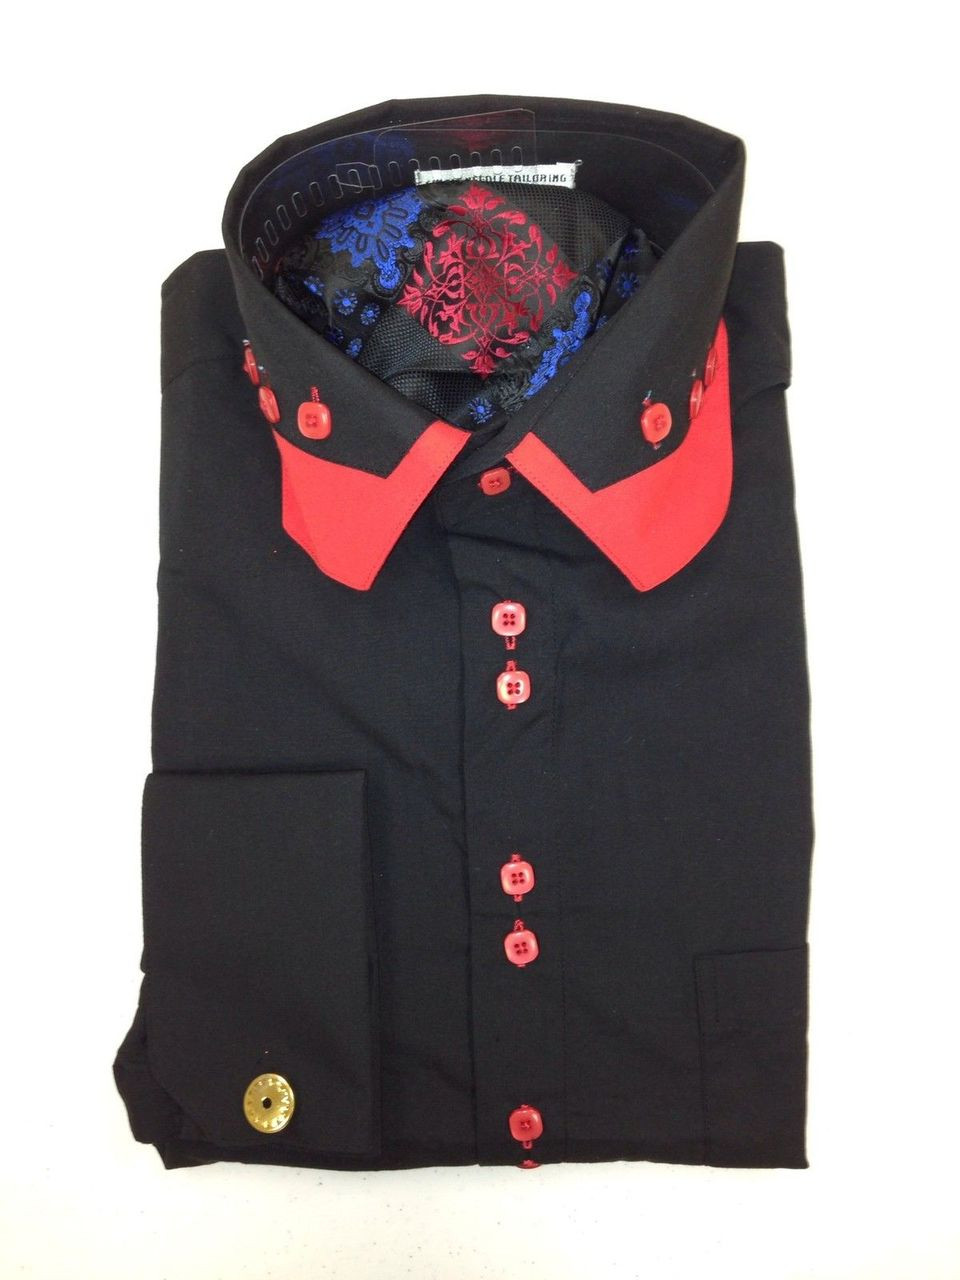 026cb4b3d002 Extreme Deal** Exotic Style 4 Pc. Fashion Dress Shirt - Black/Red ...